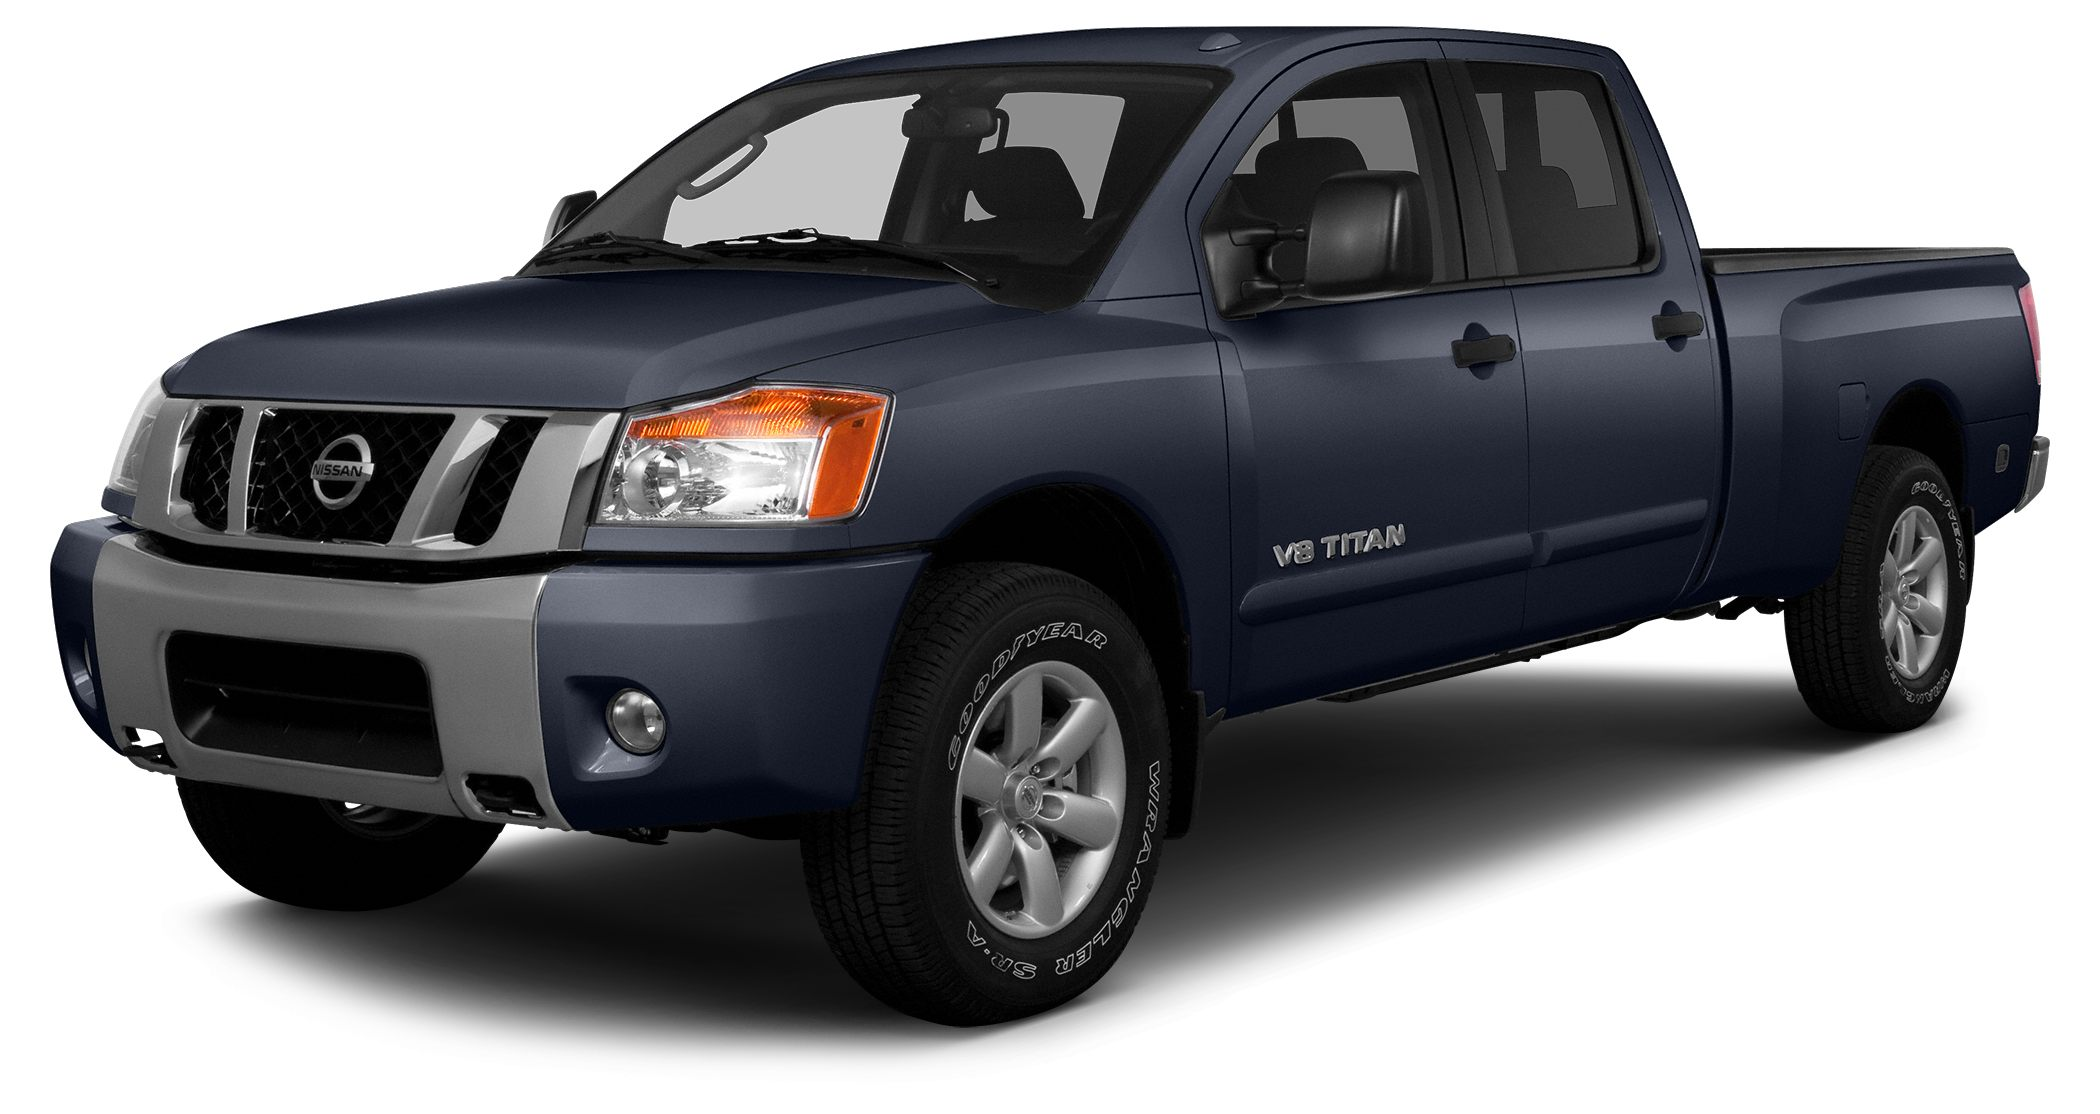 2015 Nissan Titan SL This Blue 2015 Nissan Titan SL might be just the crew cab for you Interested